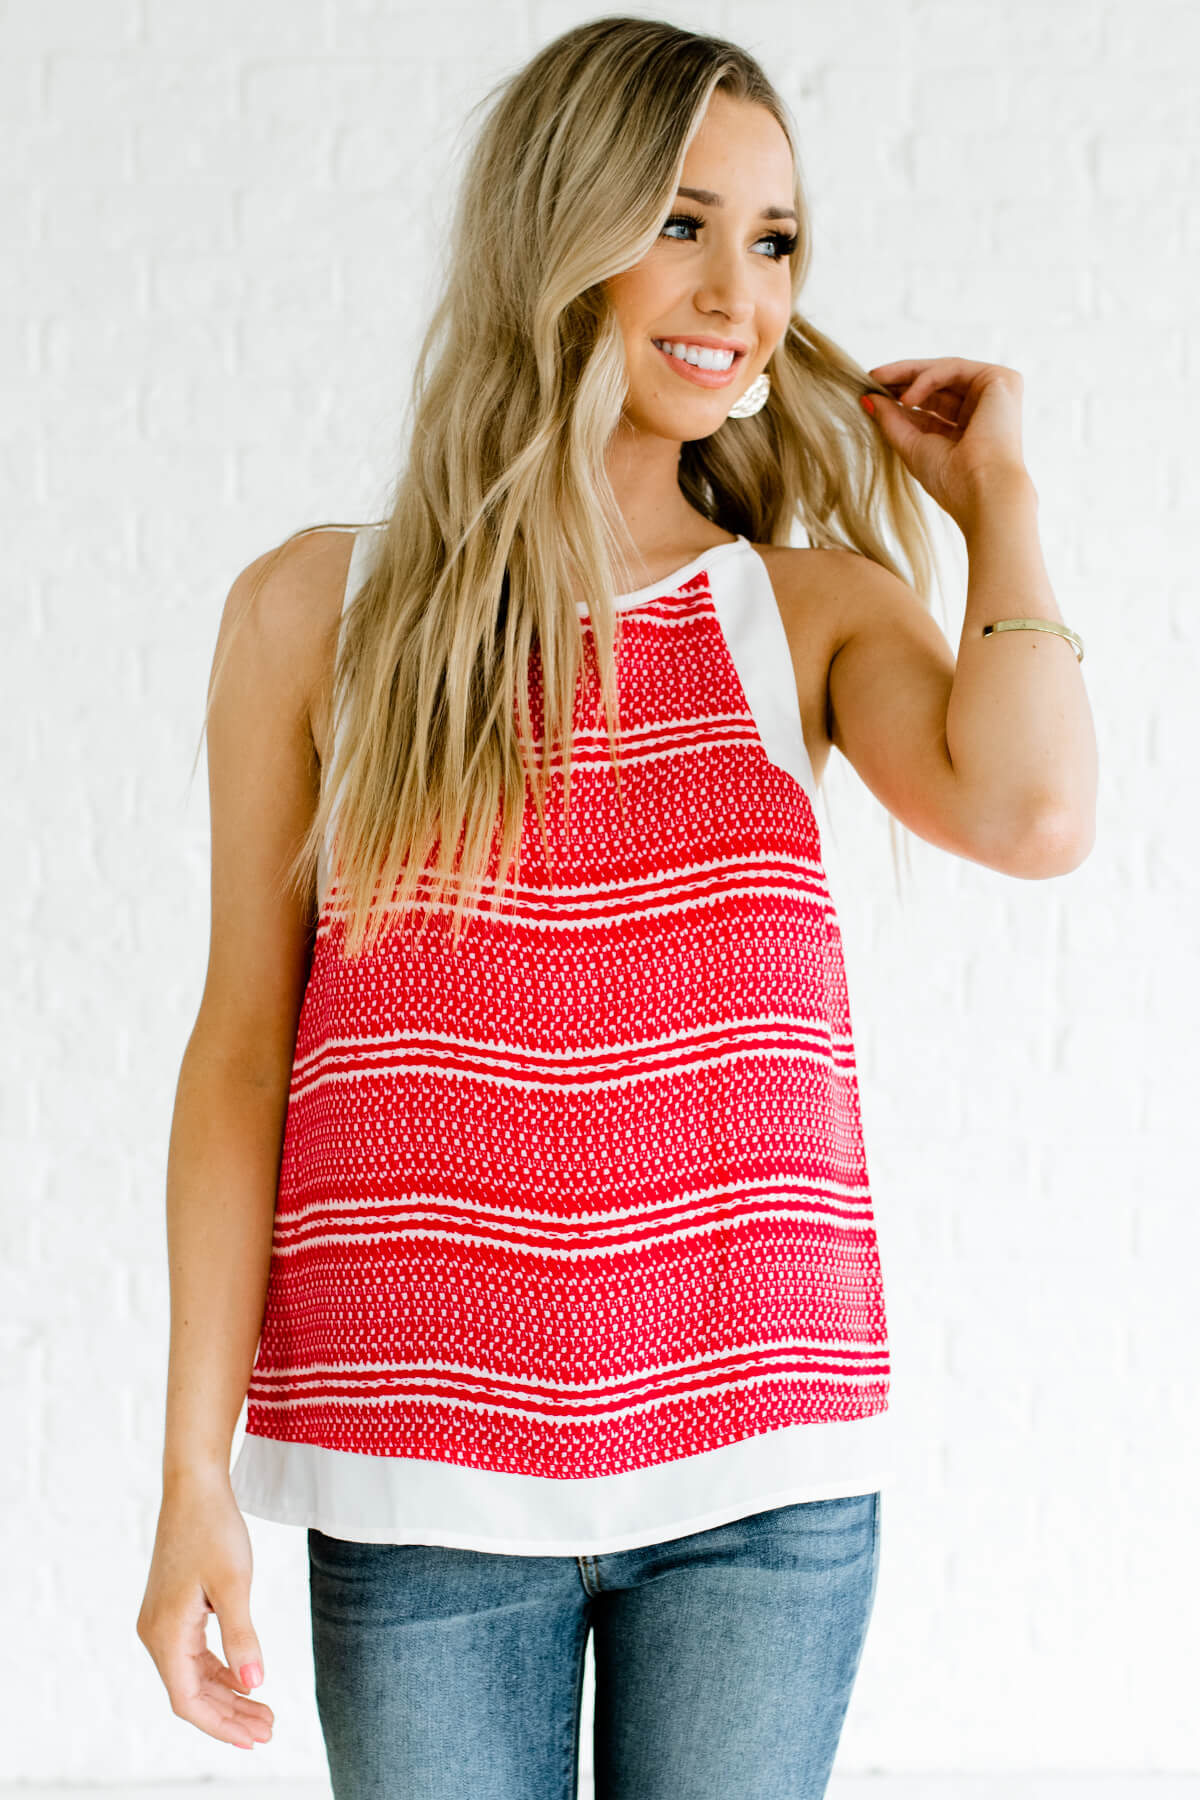 Red and Cream Patterned Boutique Tank Tops for Women